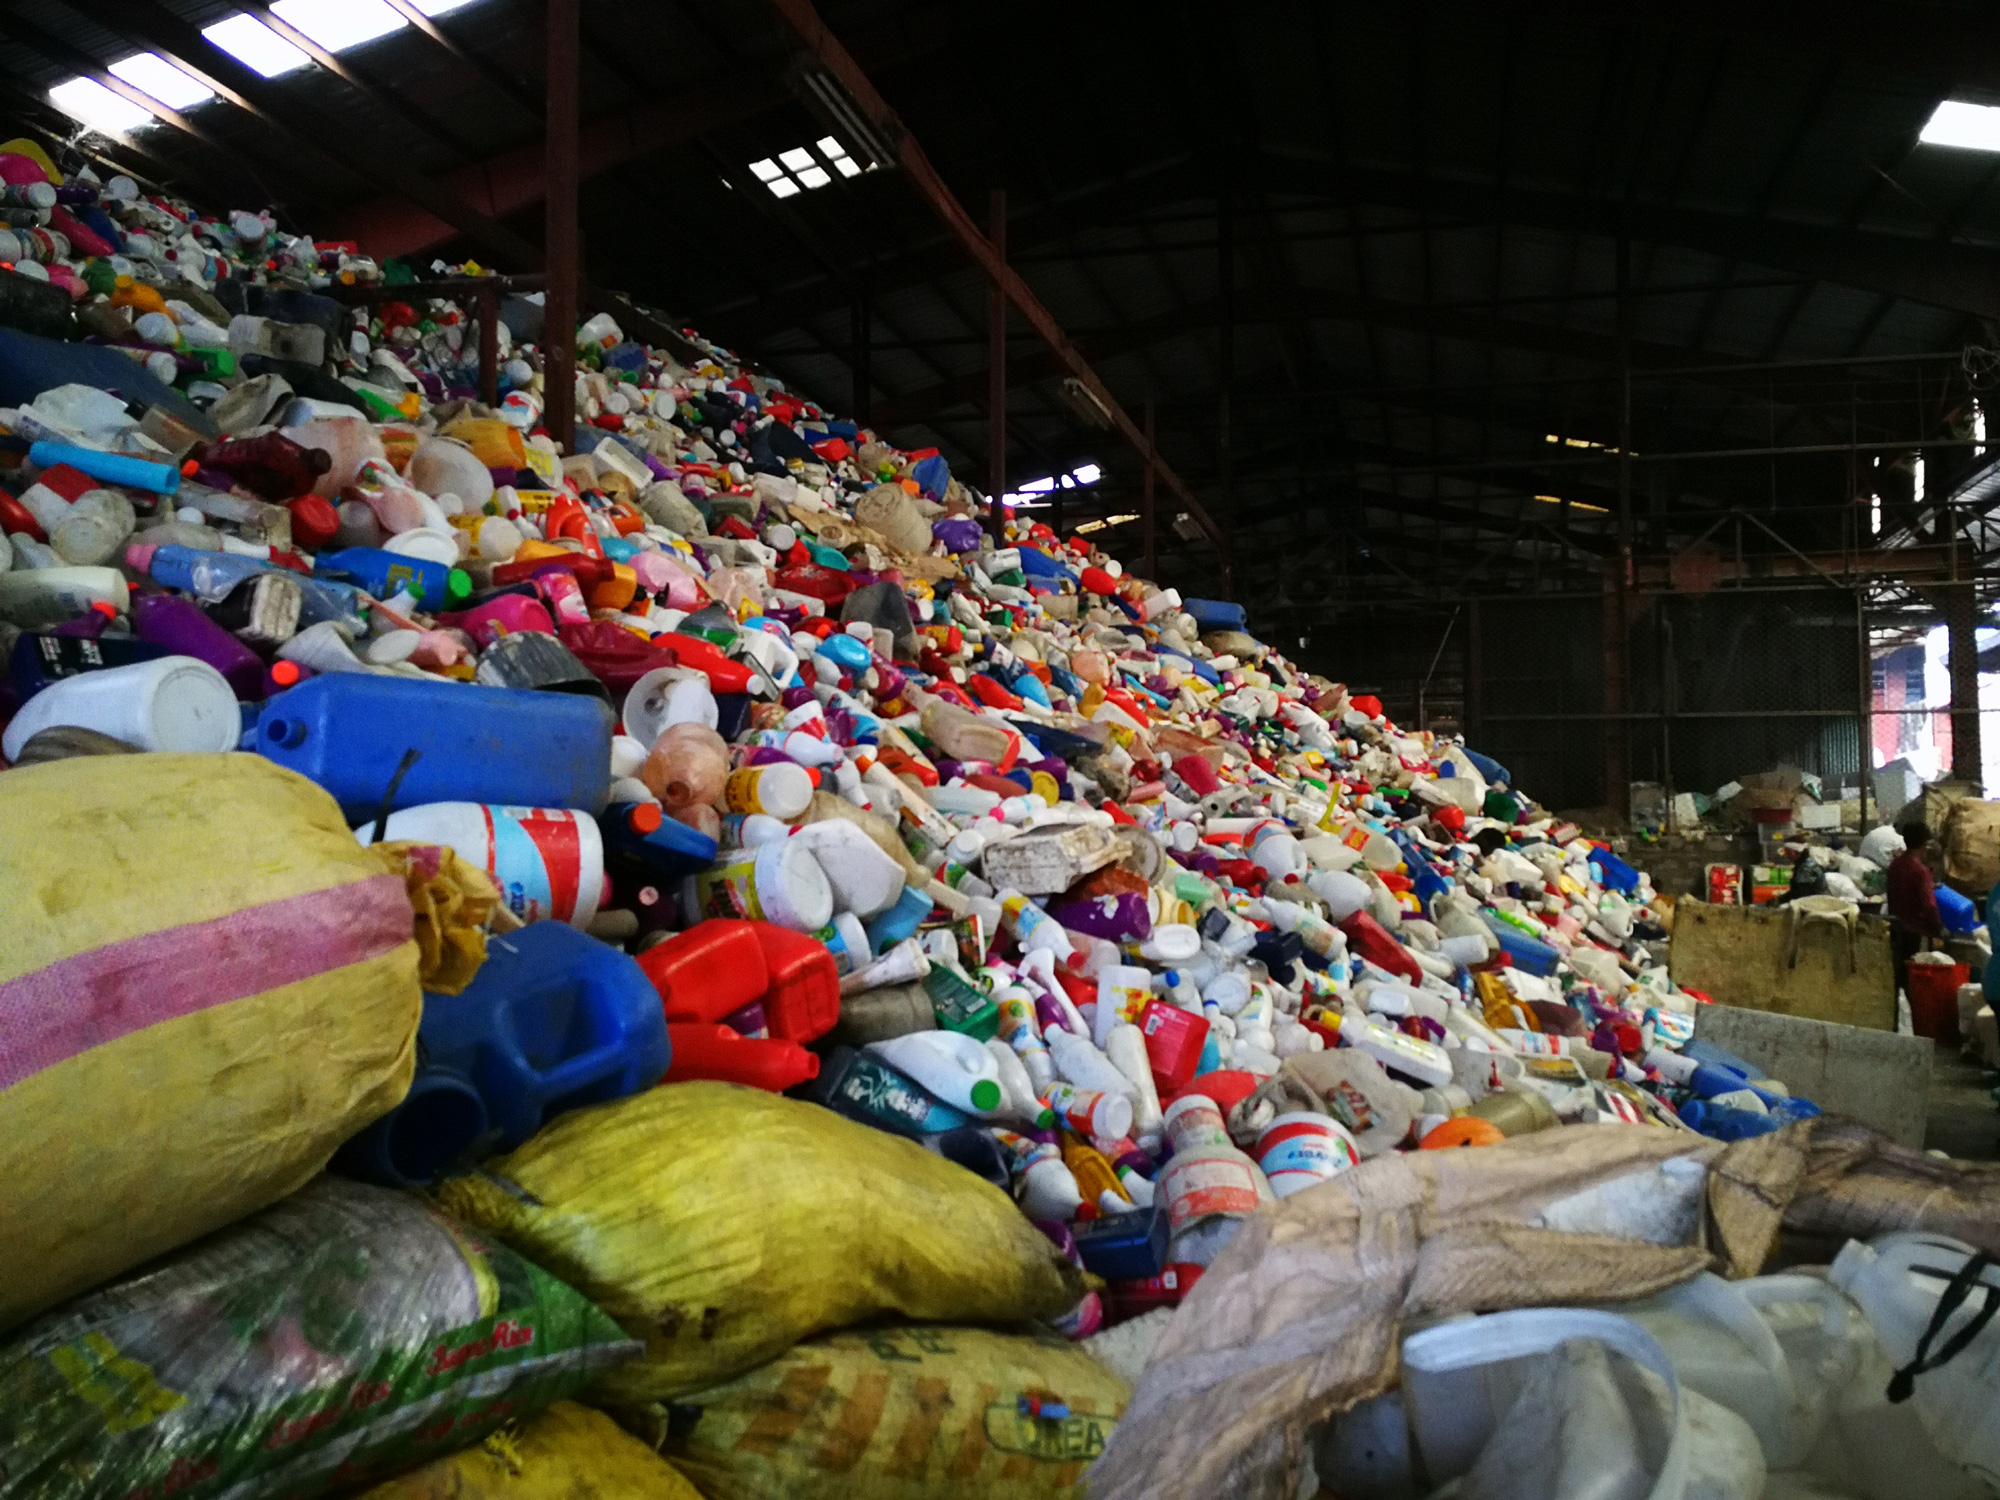 WWF continues to fight and crusade against plastic pollution; Advocates for an Extended Producer Responsibility scheme in the Philippines